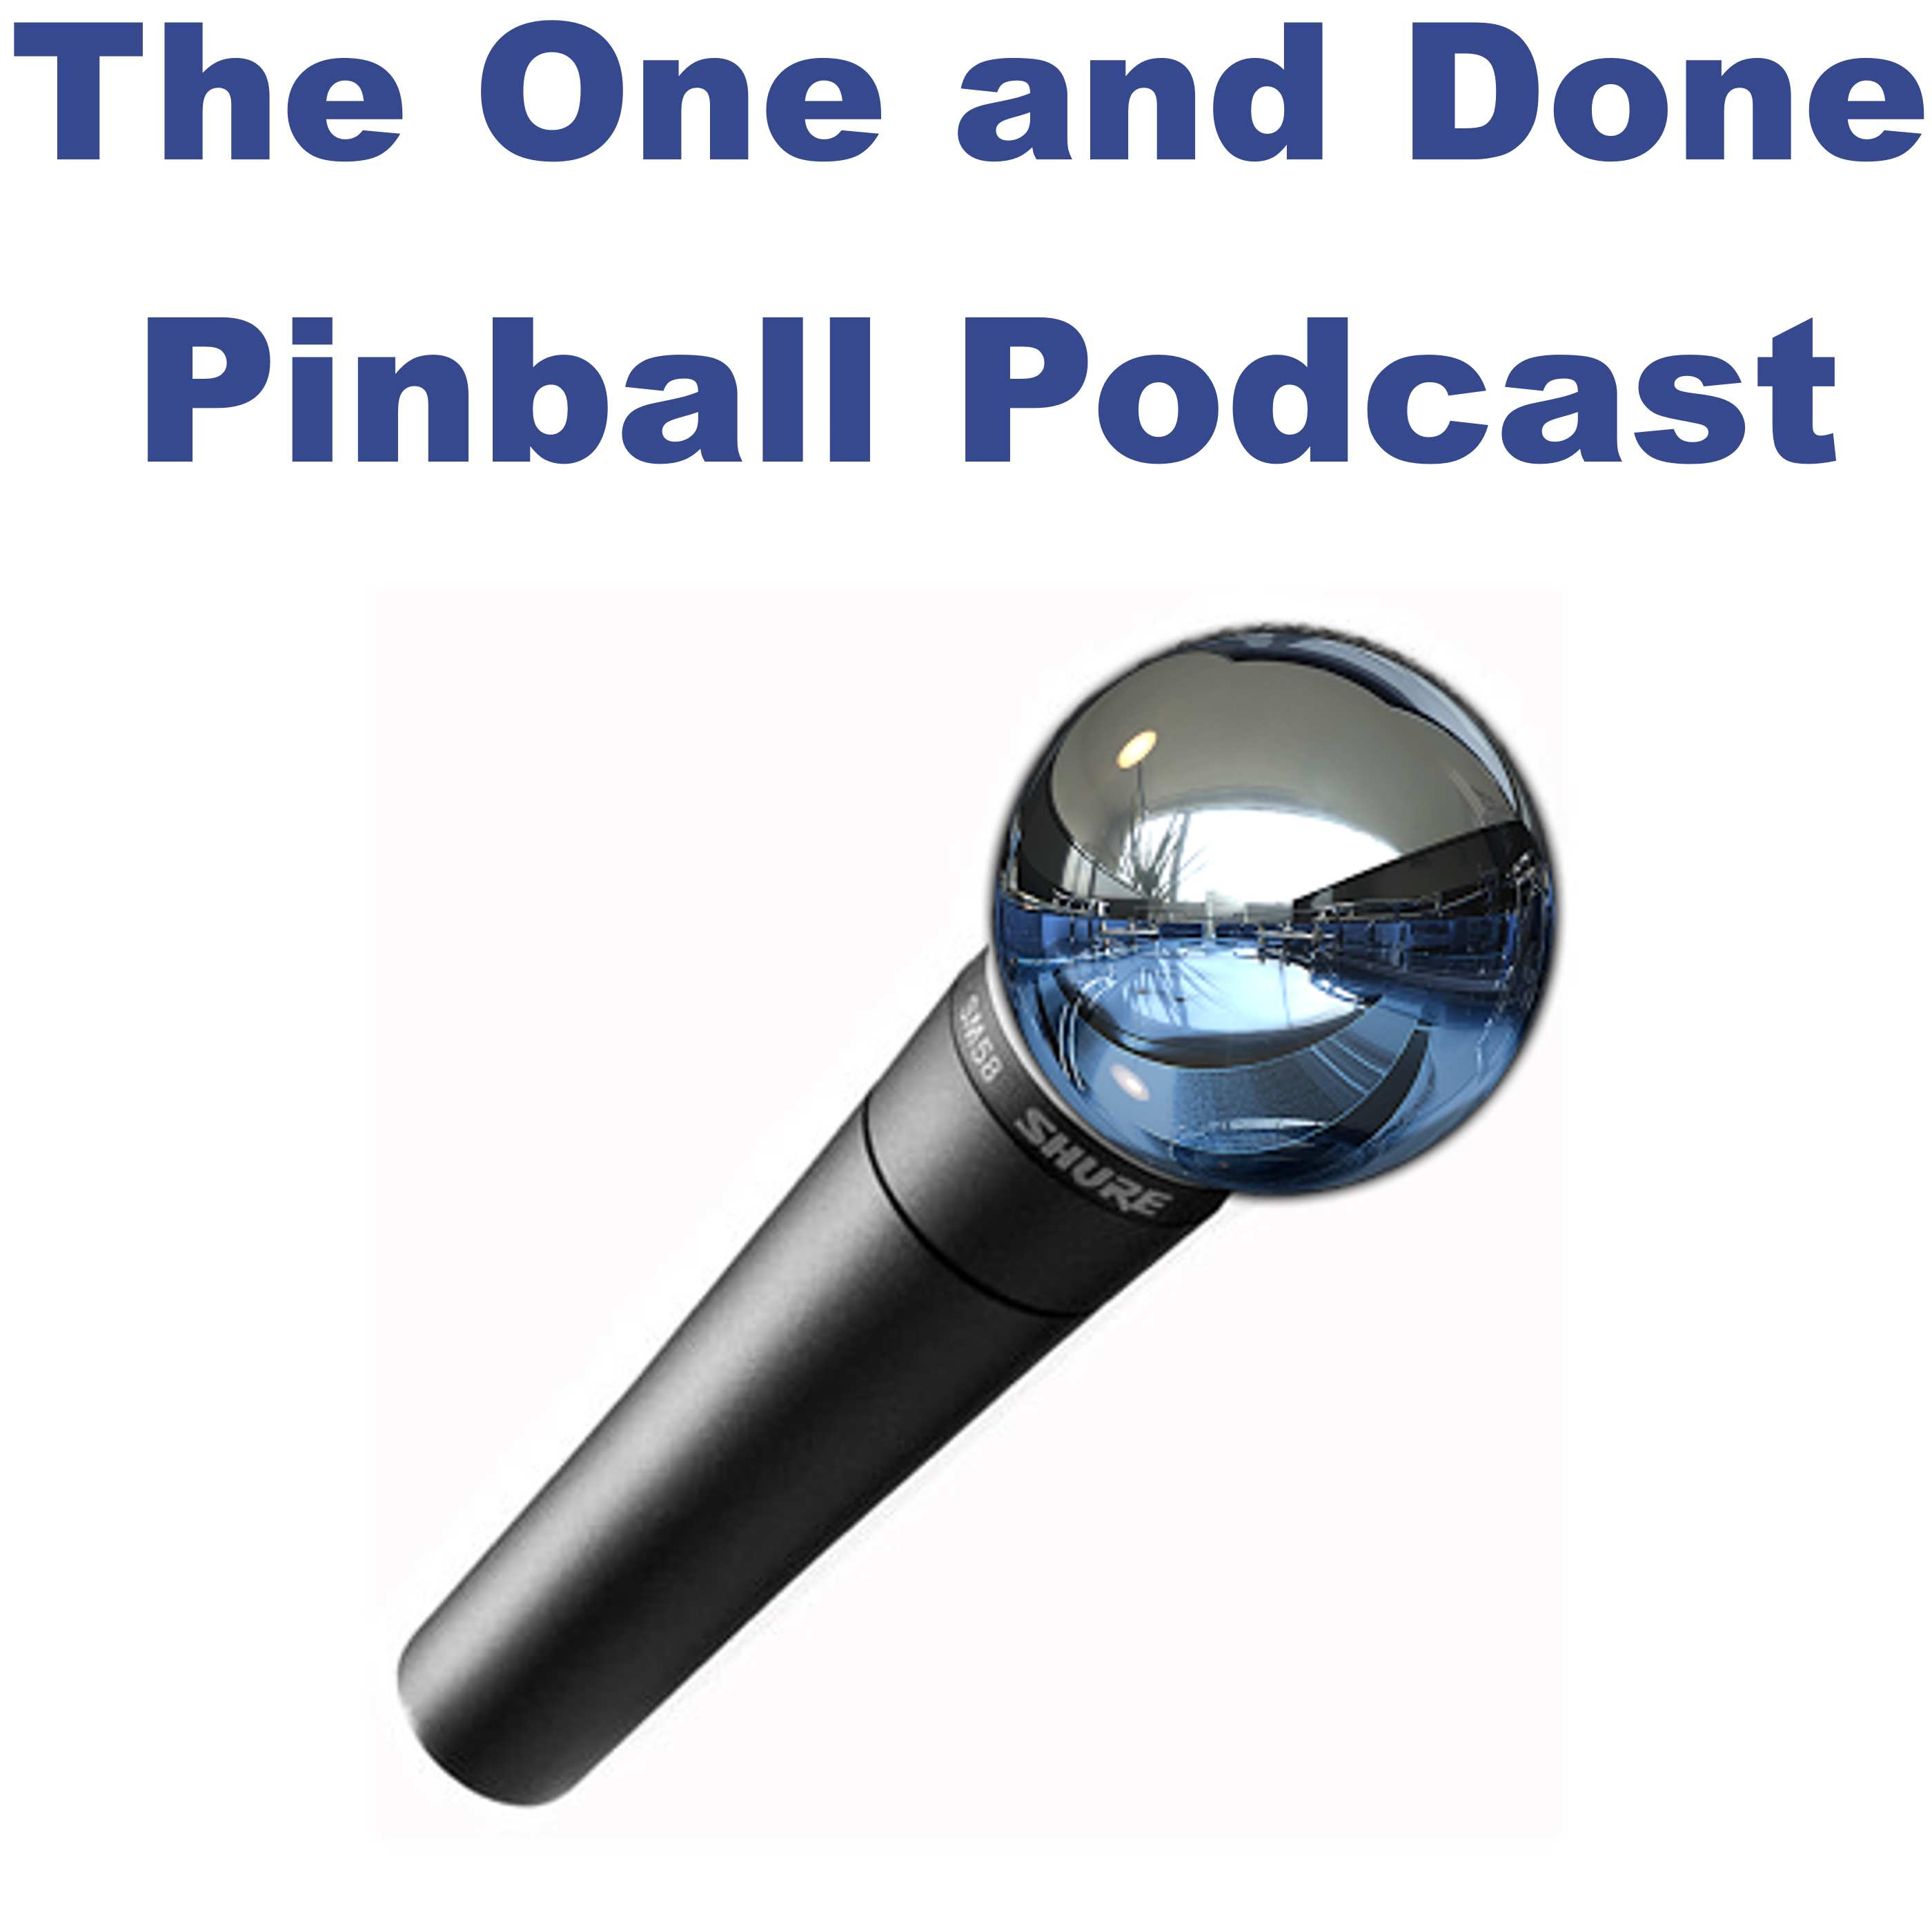 One and Done Pinball Podcast